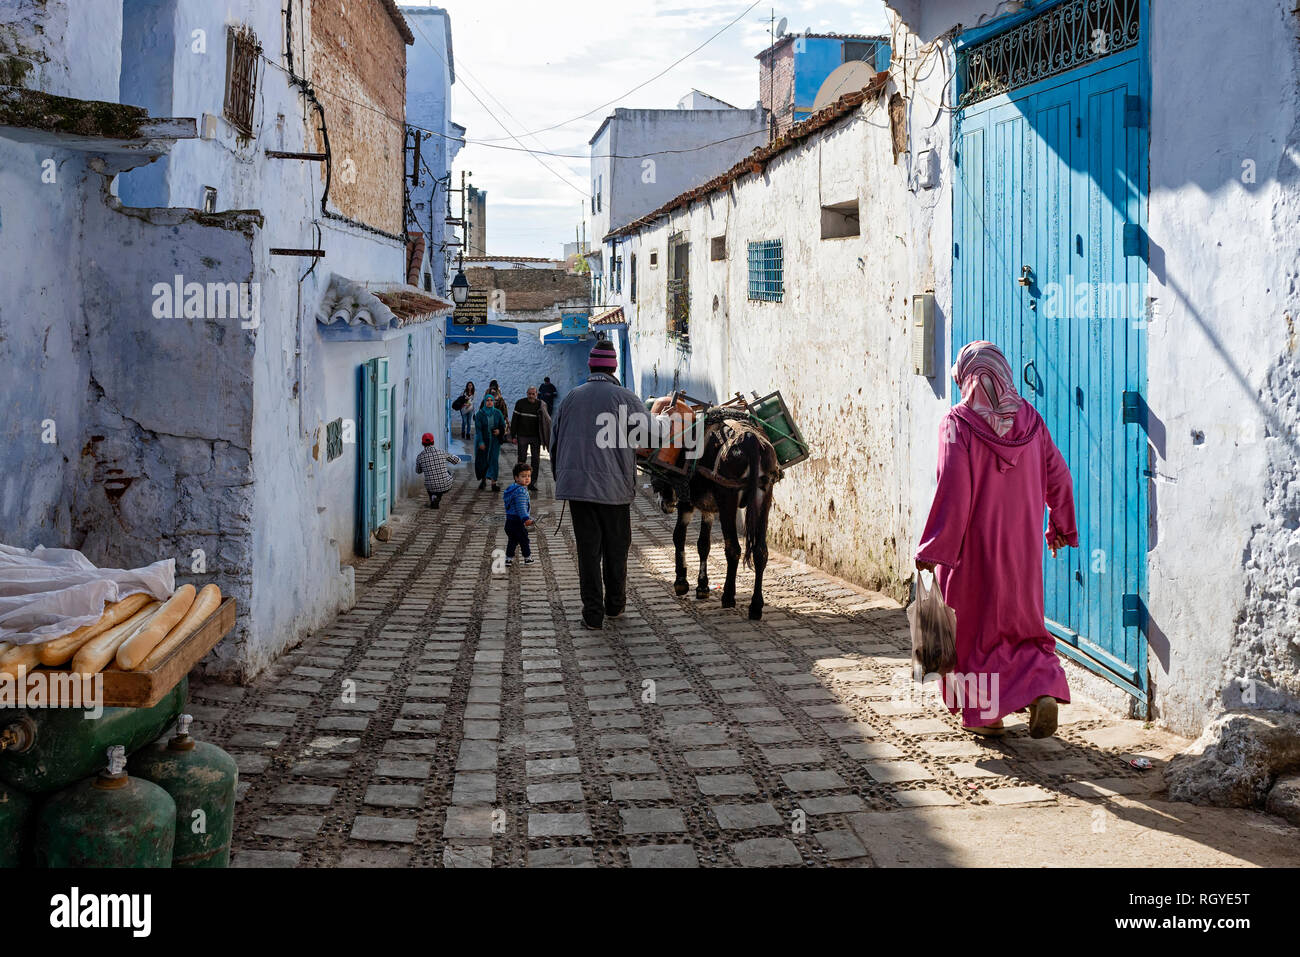 Locals going shopping, working and walking around the old town. Picture of an ordinary day in Chefchaouen, Morocco - Stock Image